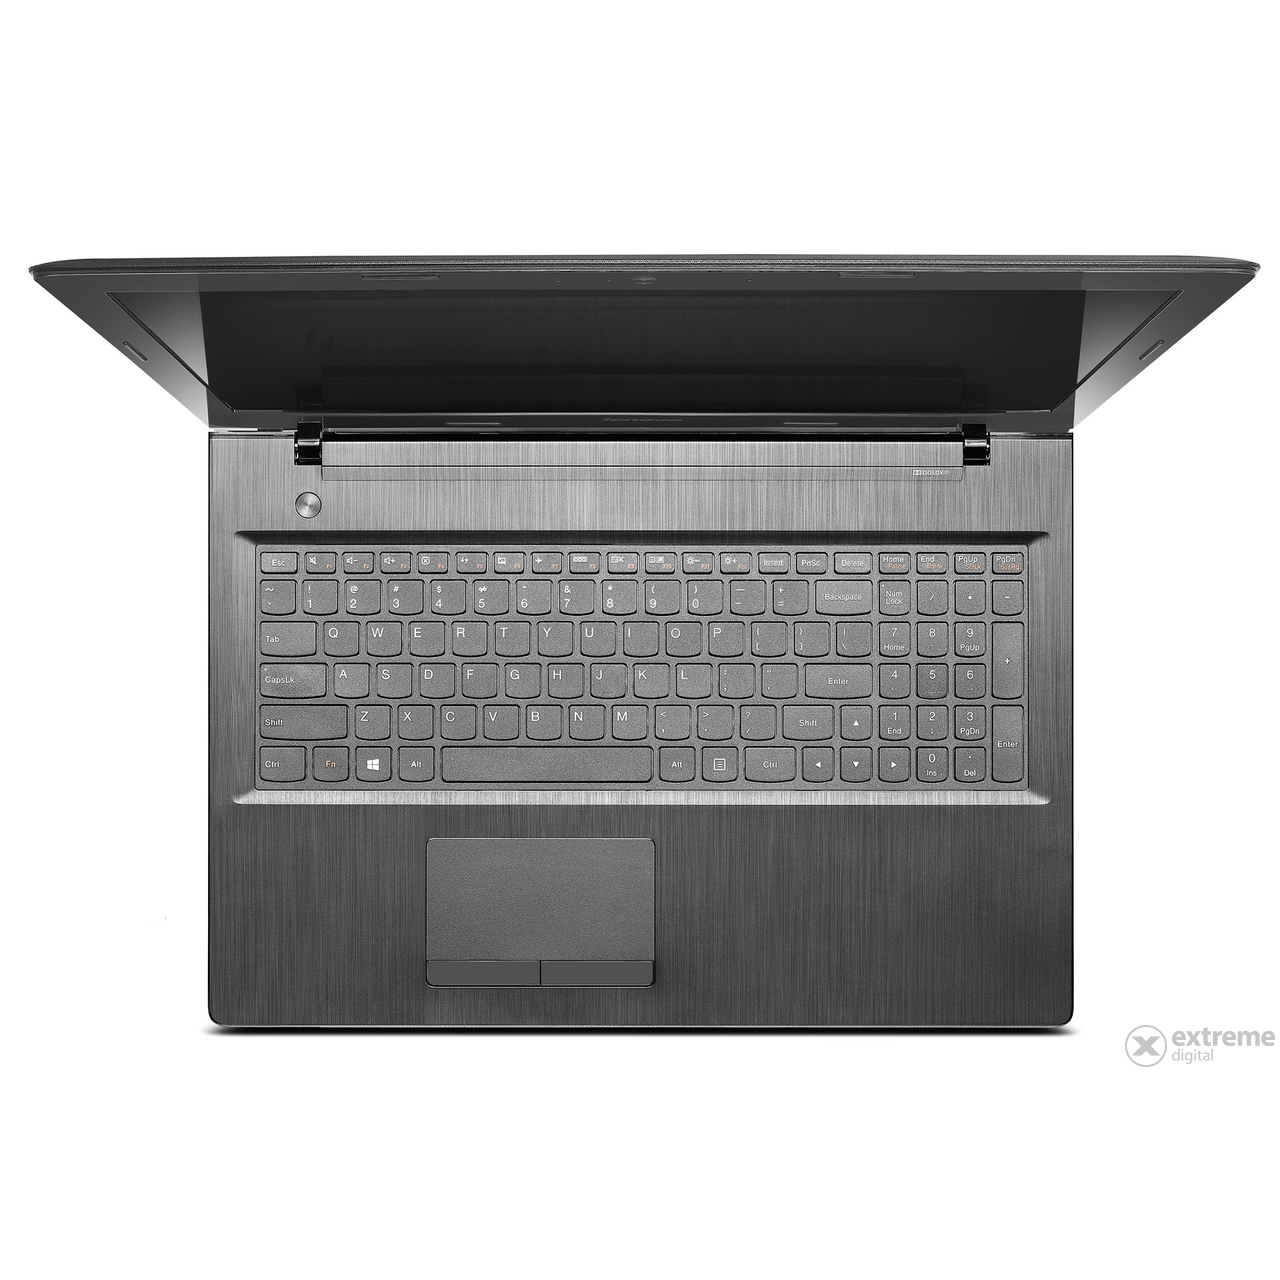 lenovo-ideapad-g40-30-80fy00gdhv-14-notebook-fekete-windows-8-1-operacios-rendszer-_9f31b8d4.jpg